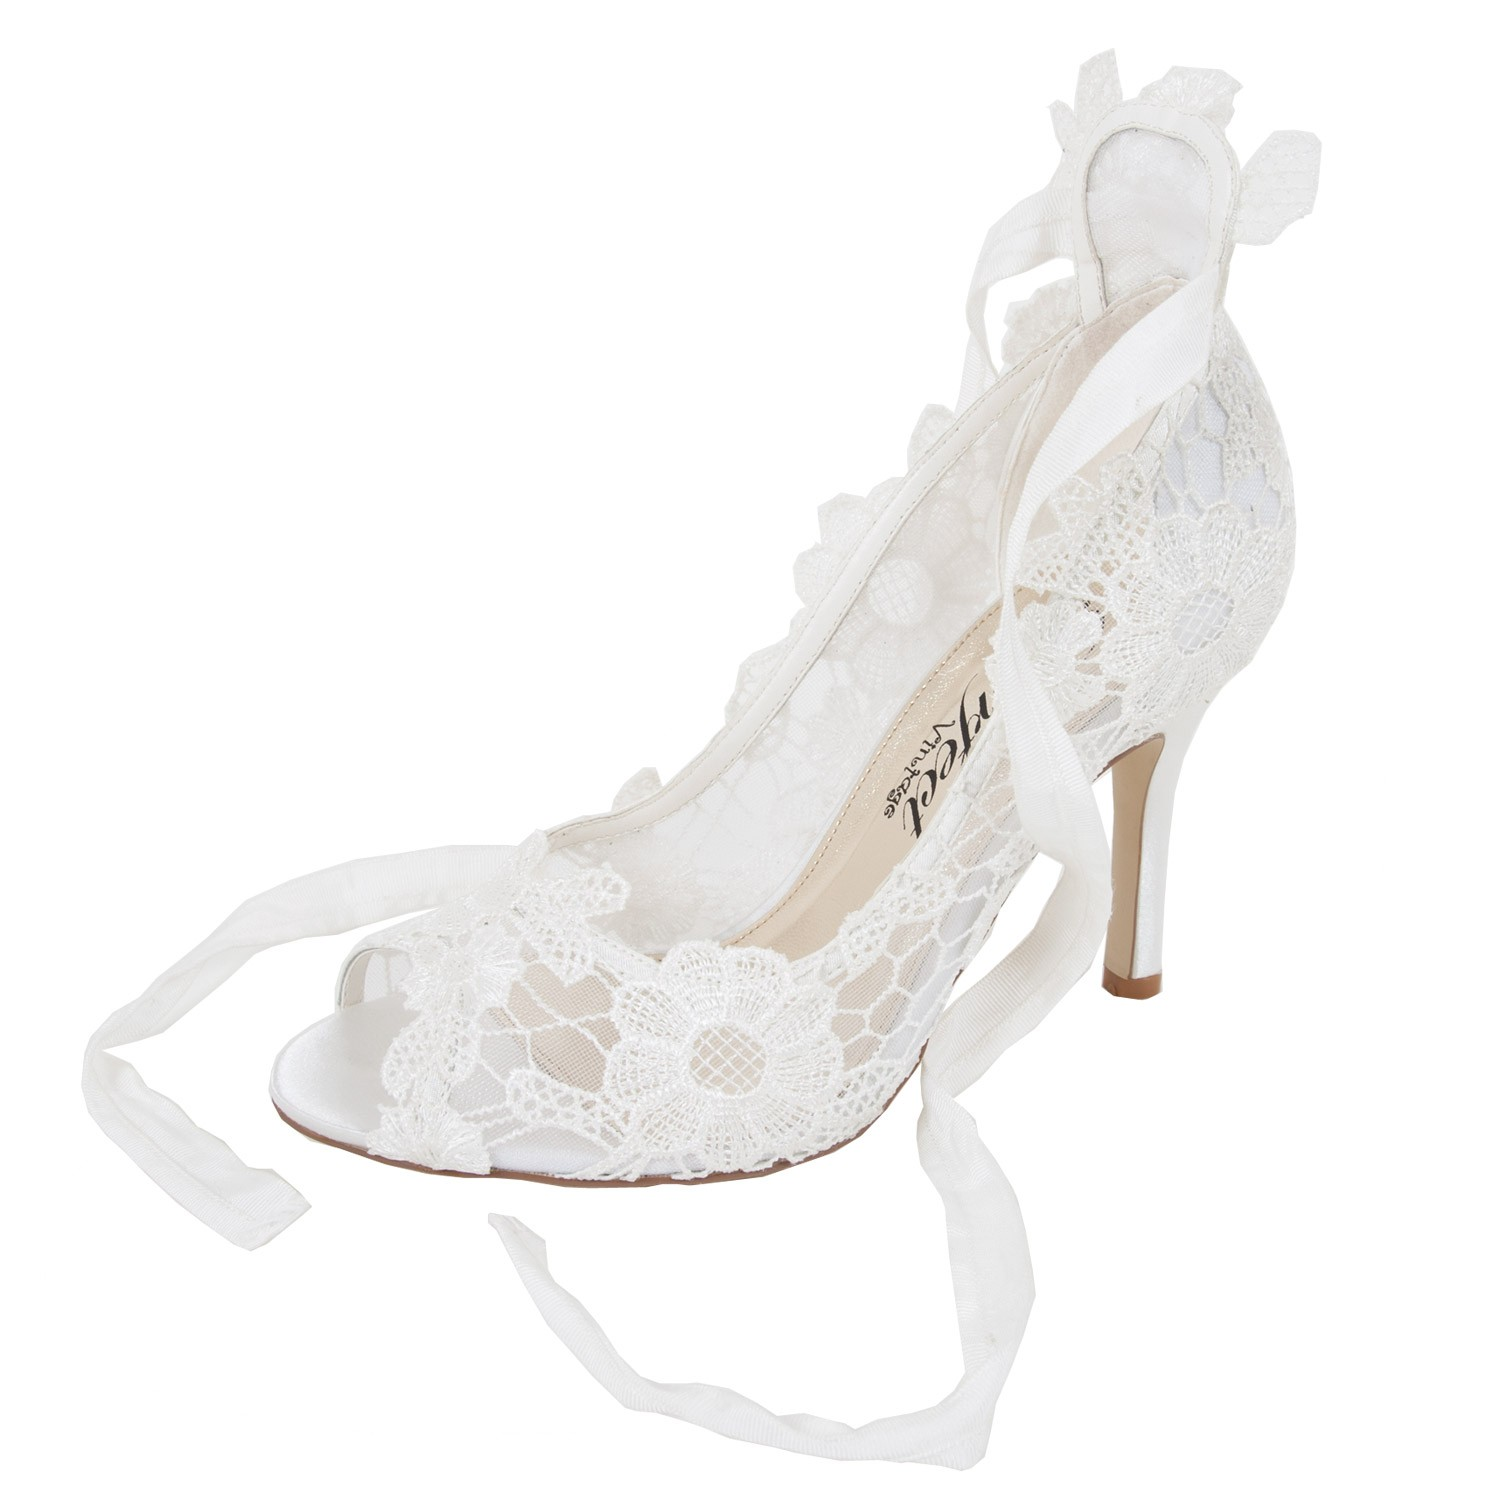 Chaussures mariage dentelle ruban à lacer